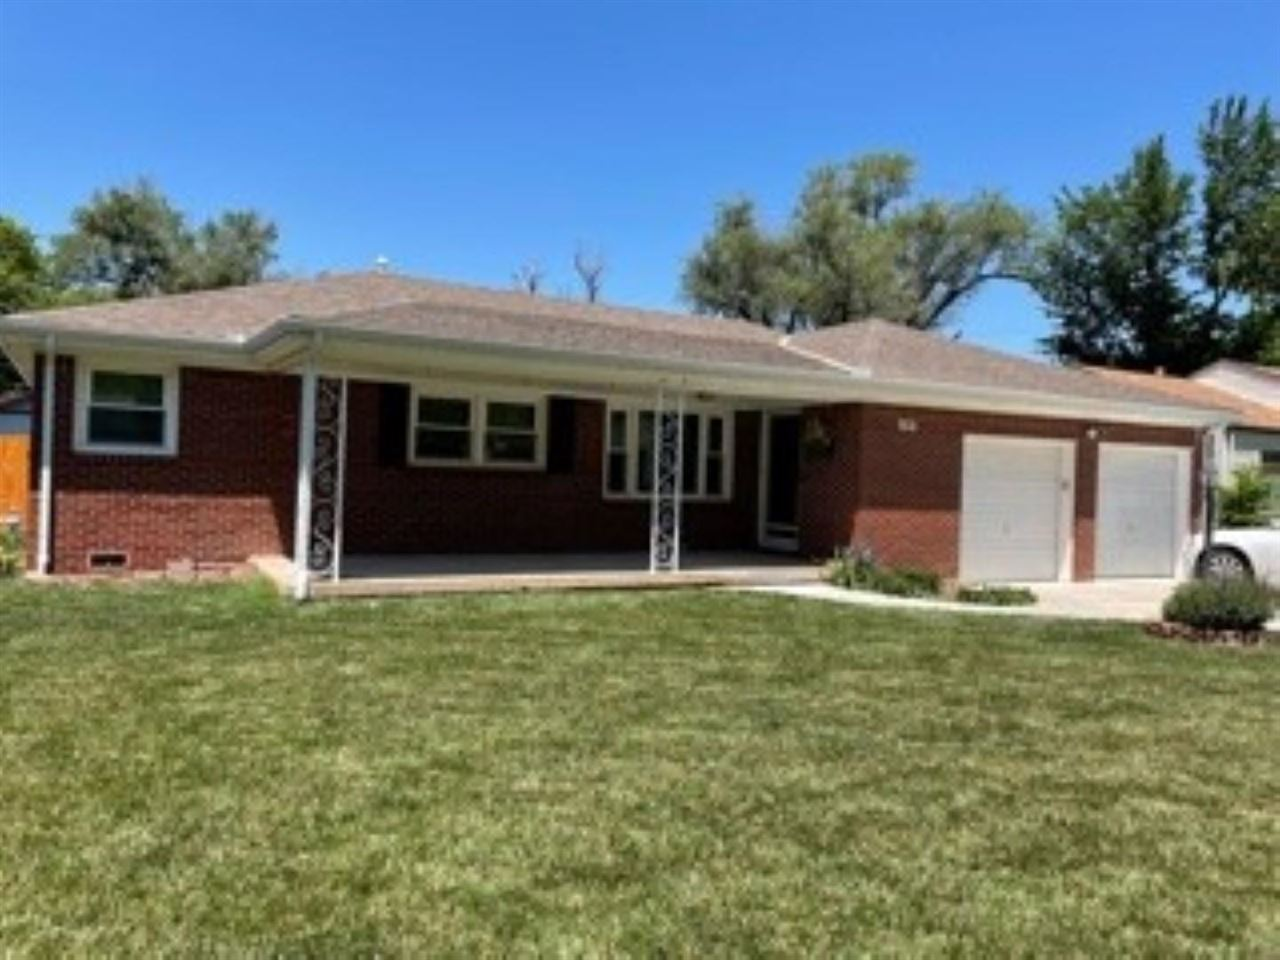 Clean, well kept all brick ranch with over 1900 square feet of living space is a must see!  This ado